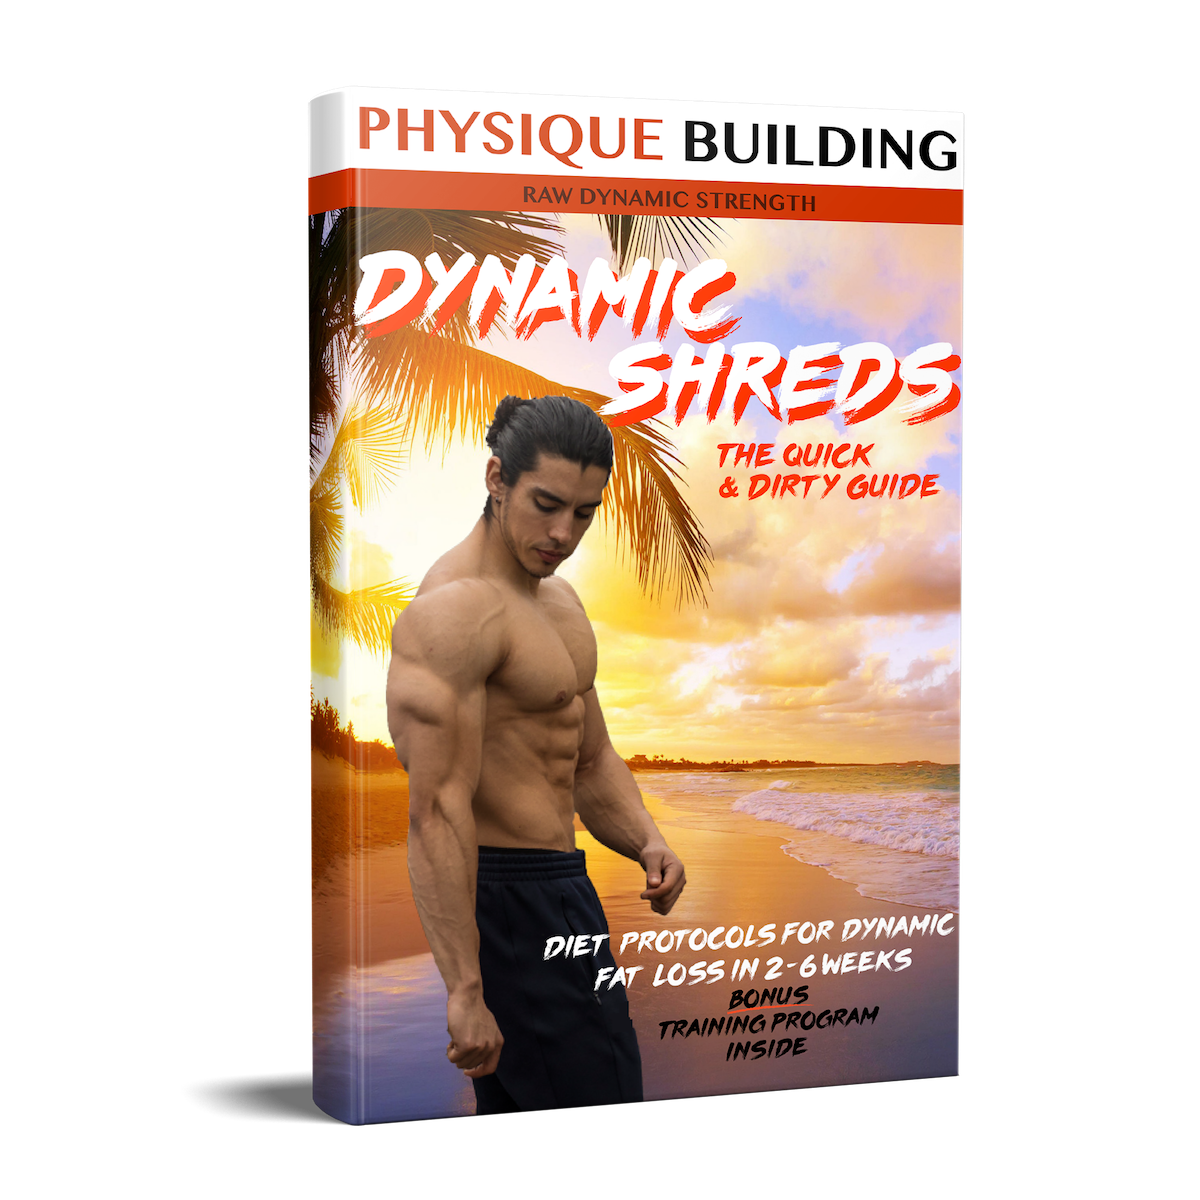 https://www.rawdynamicstrength.com/dynamic-shreds-1-1